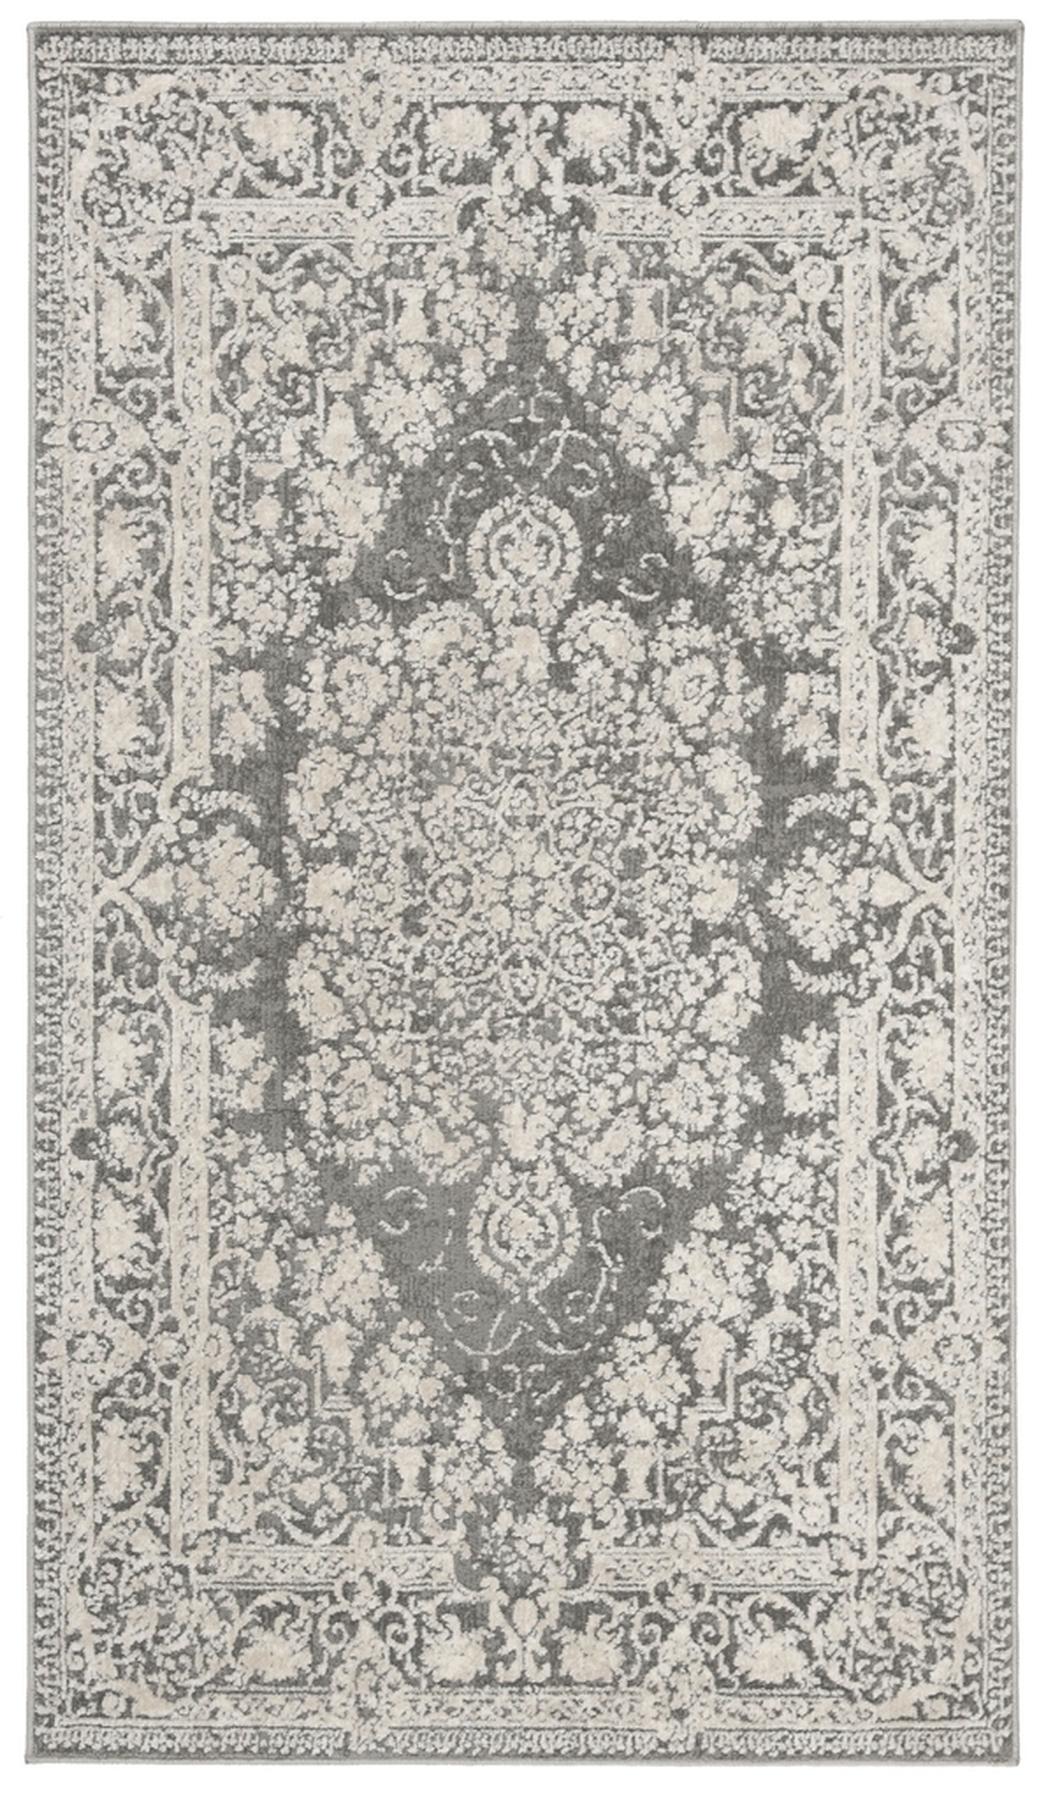 Rug Rft664b Reflection Area Rugs By Safavieh